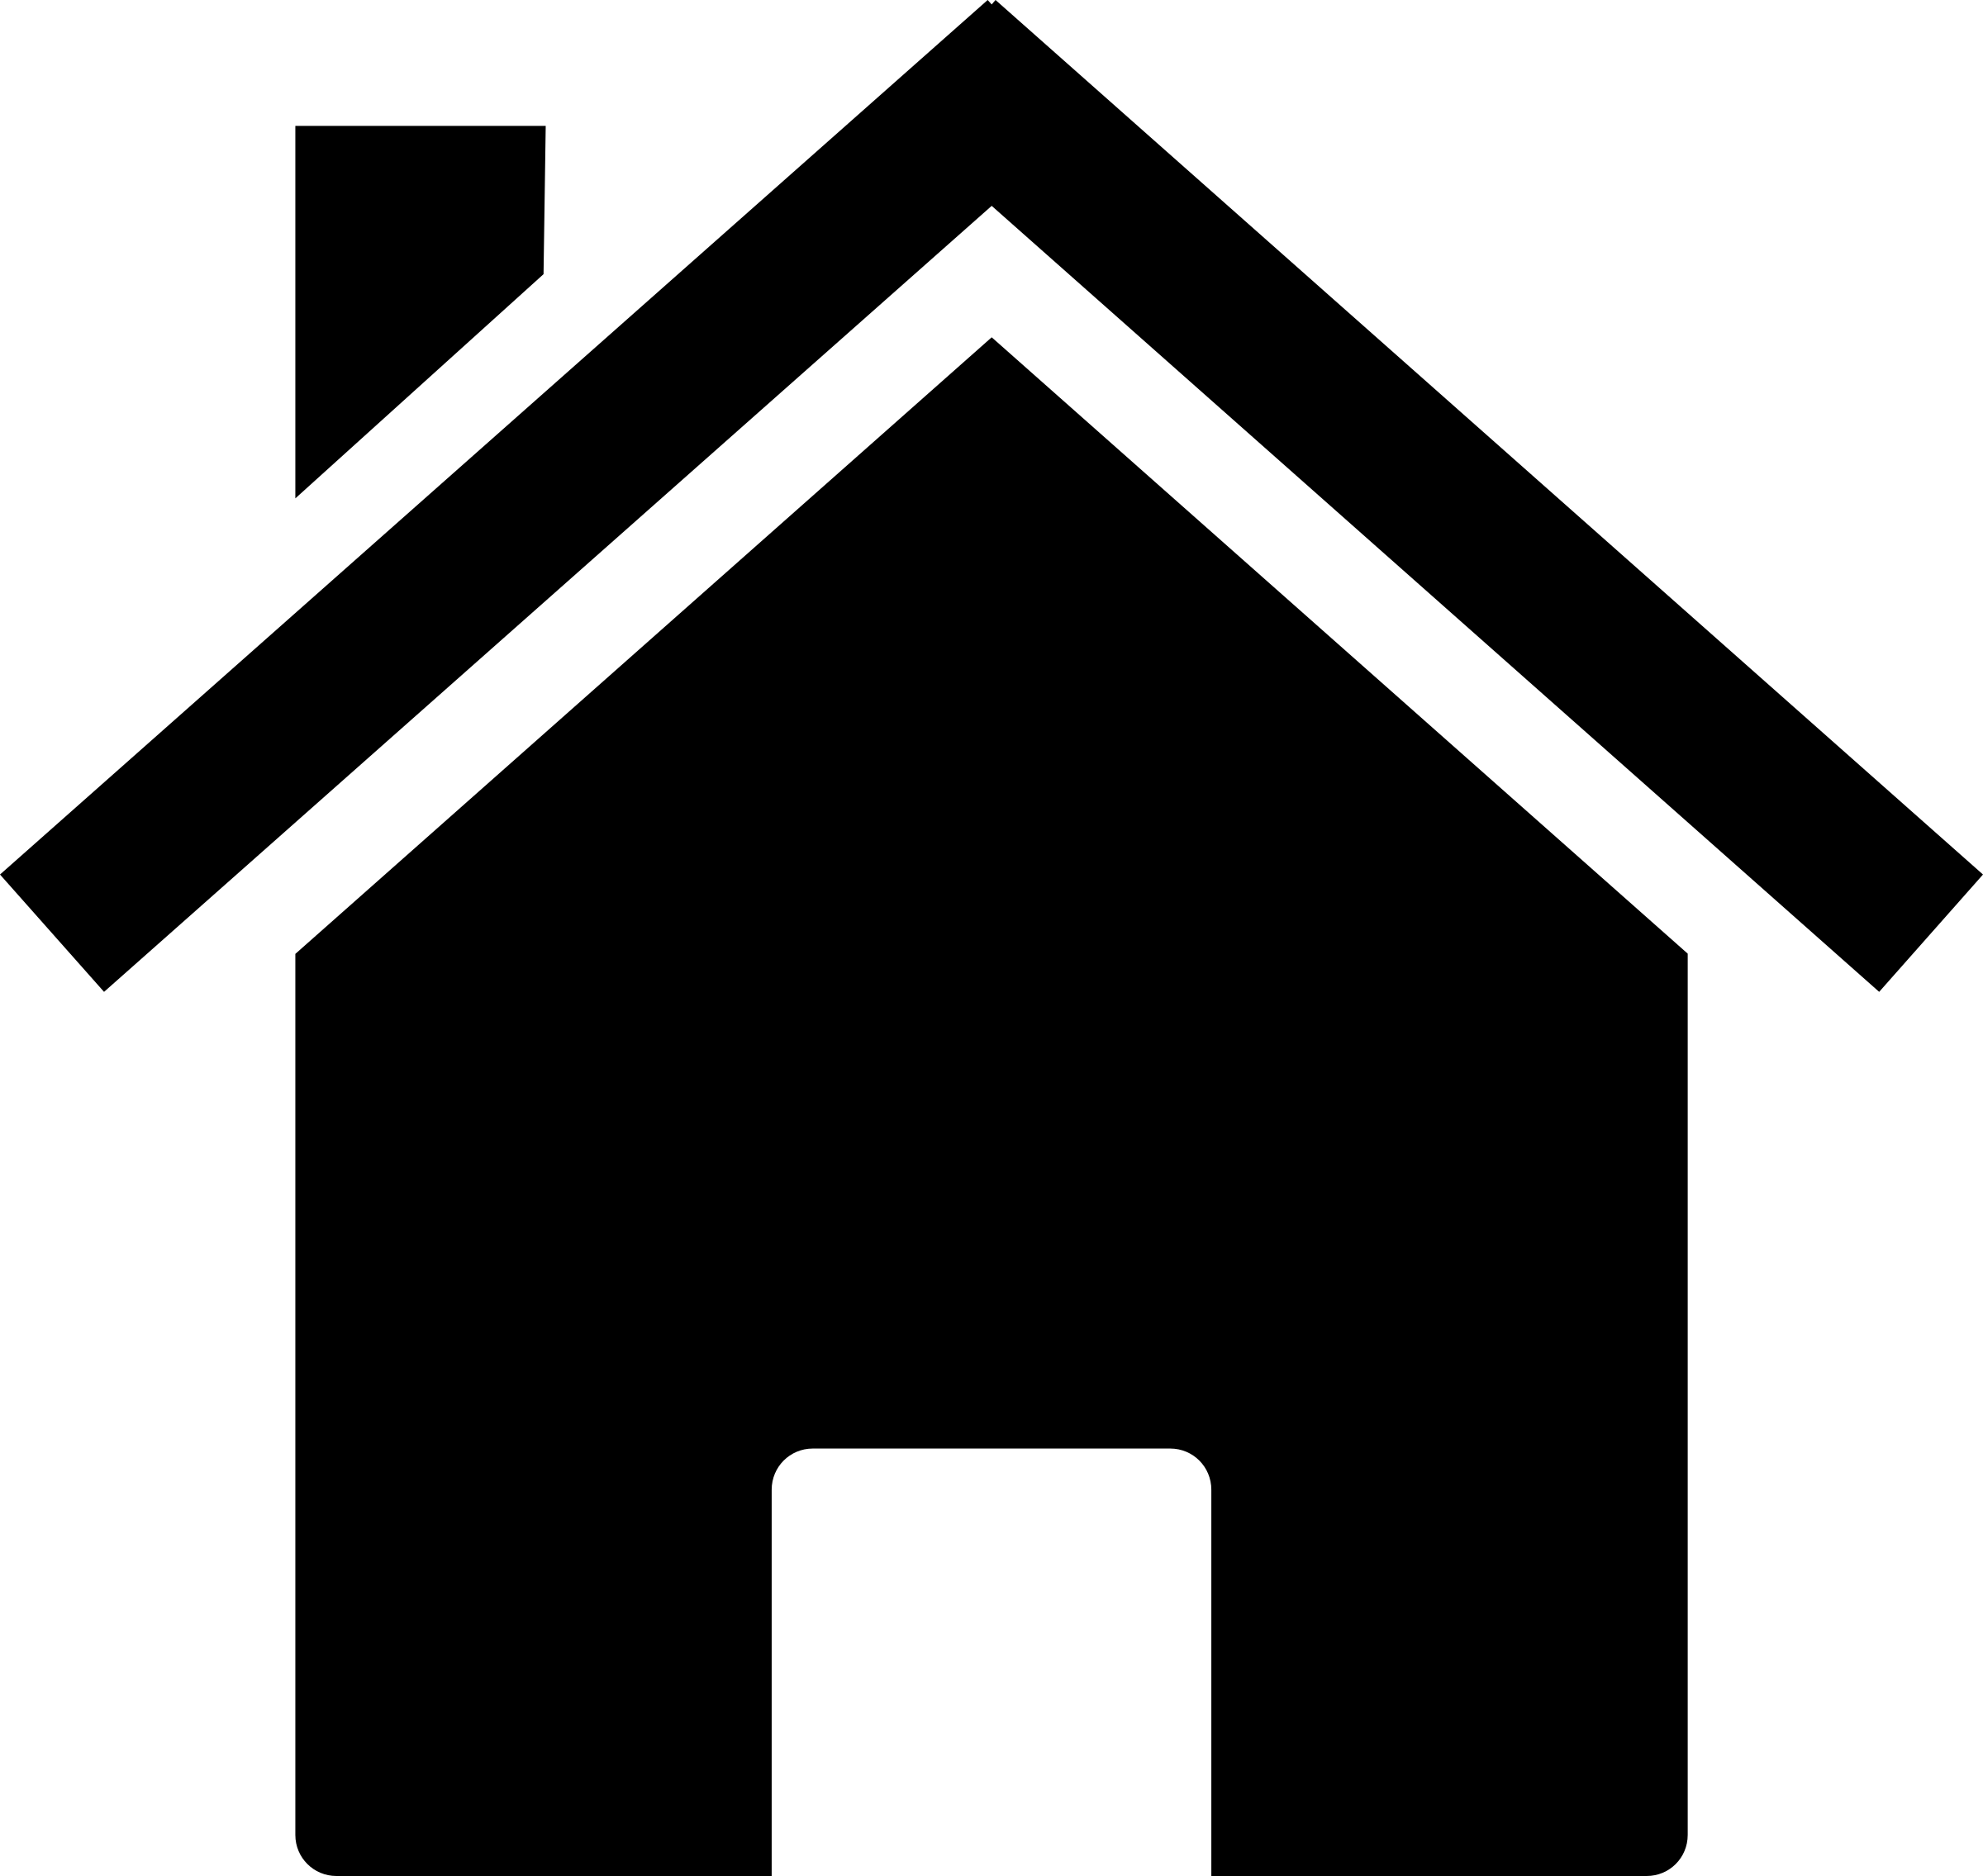 Home Icons Transparent Png Images Stickpng